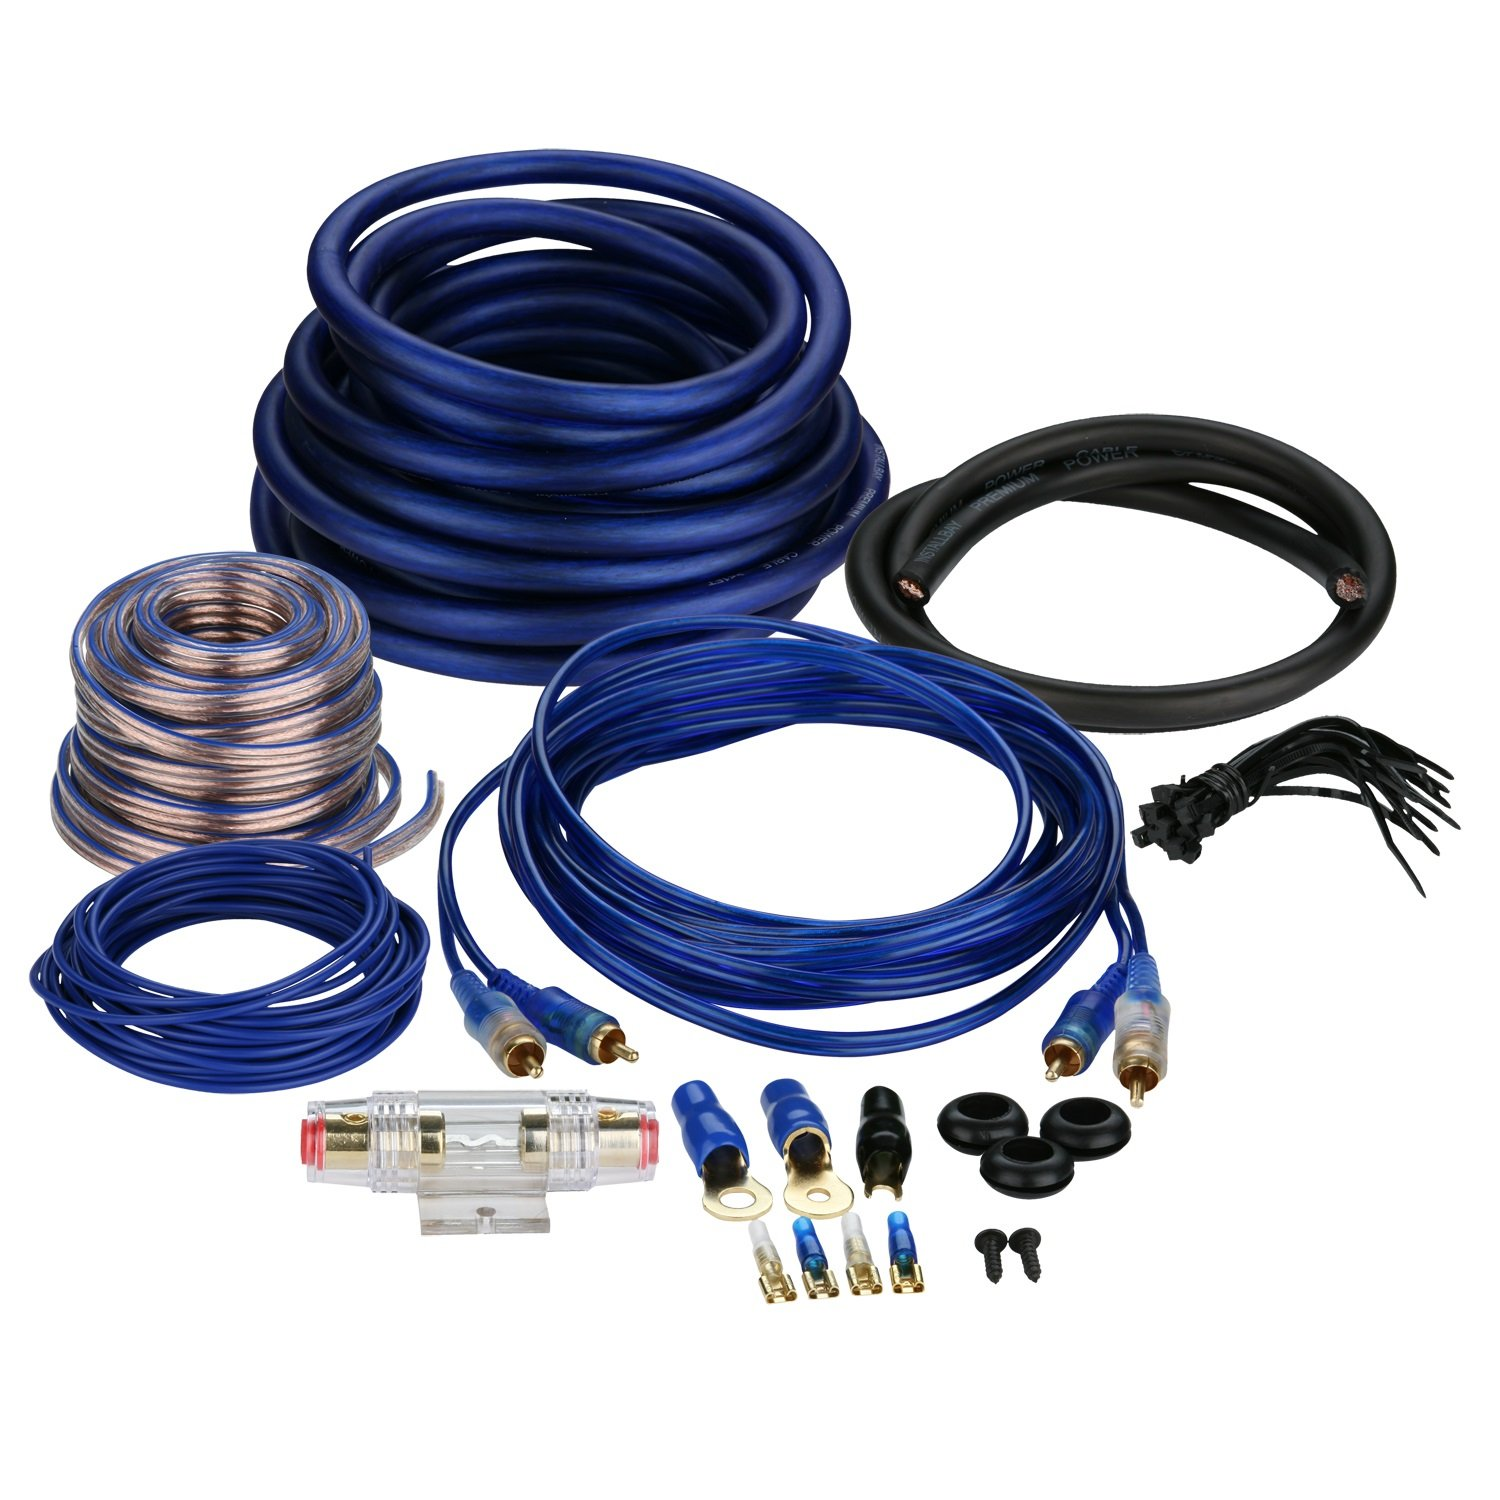 Kit Amp Wiring Wire Cable 4 Gauge Awg Complete Amplifier Details About Premium Power 3000w Anl Install Amazoncom Bay 1600 Watt Value Car Electronics